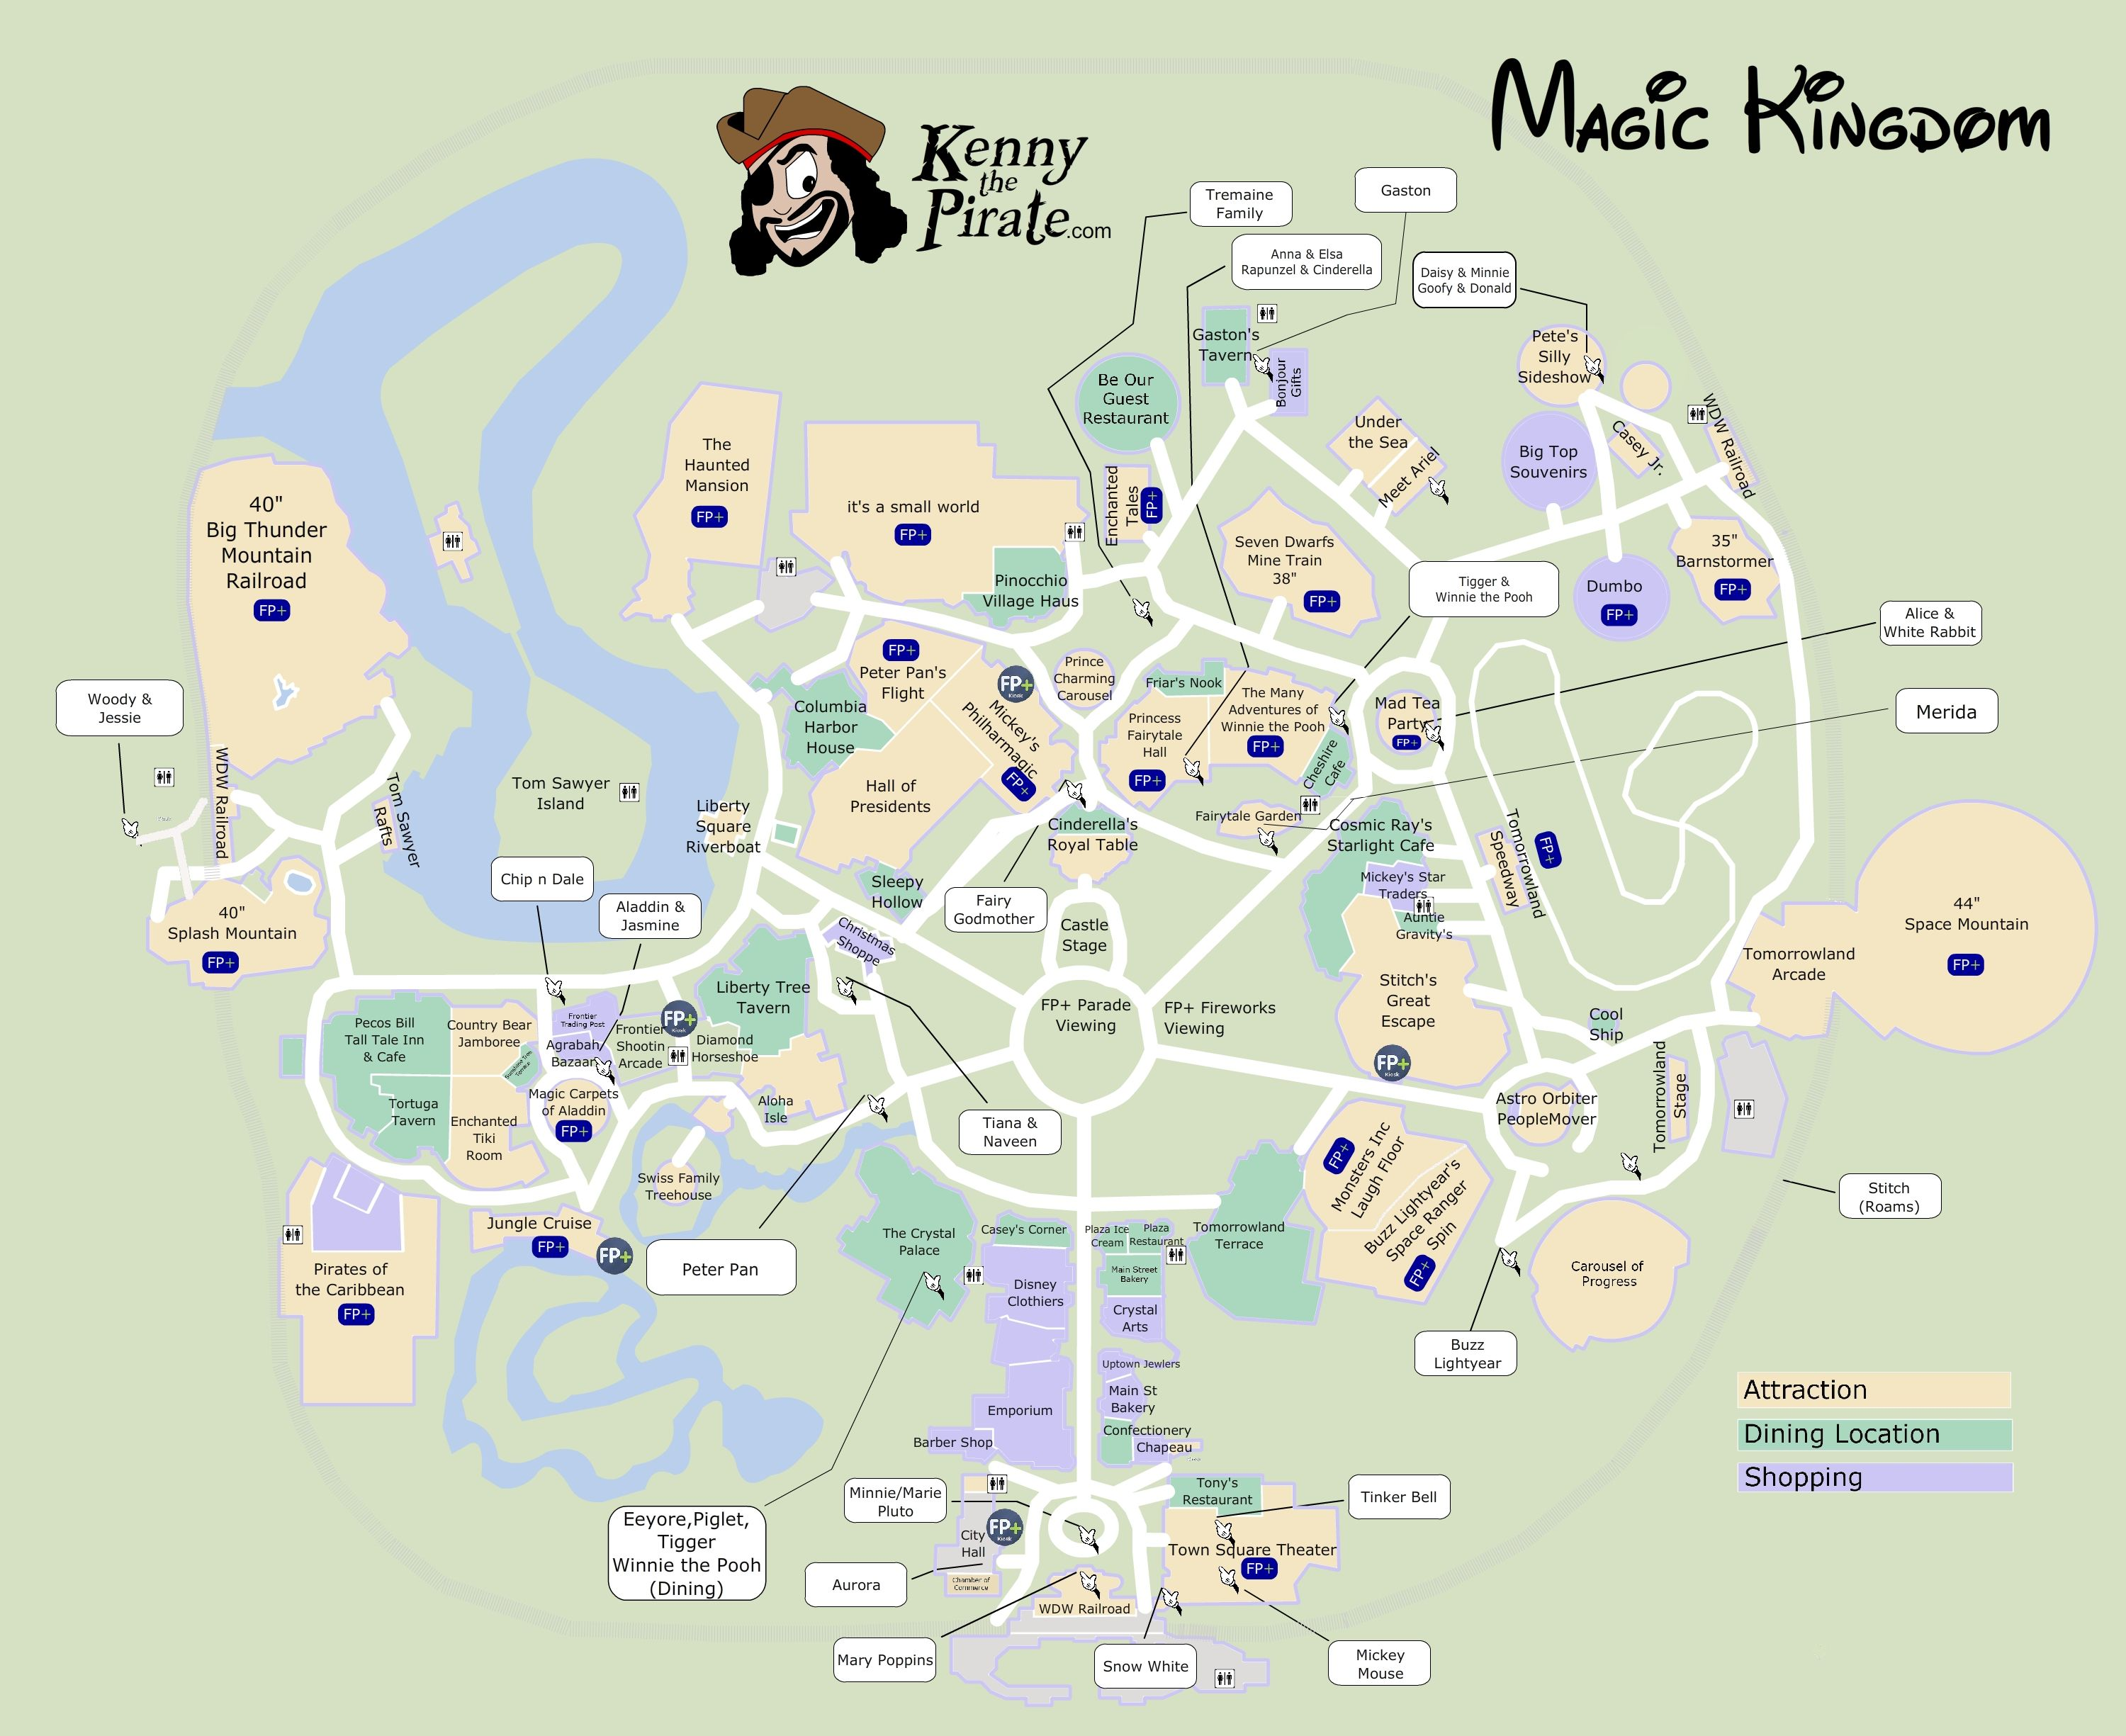 photograph relating to Printable Magic Kingdom Maps identify Magic Kingdom Map which include Fastp As well as sites, rides